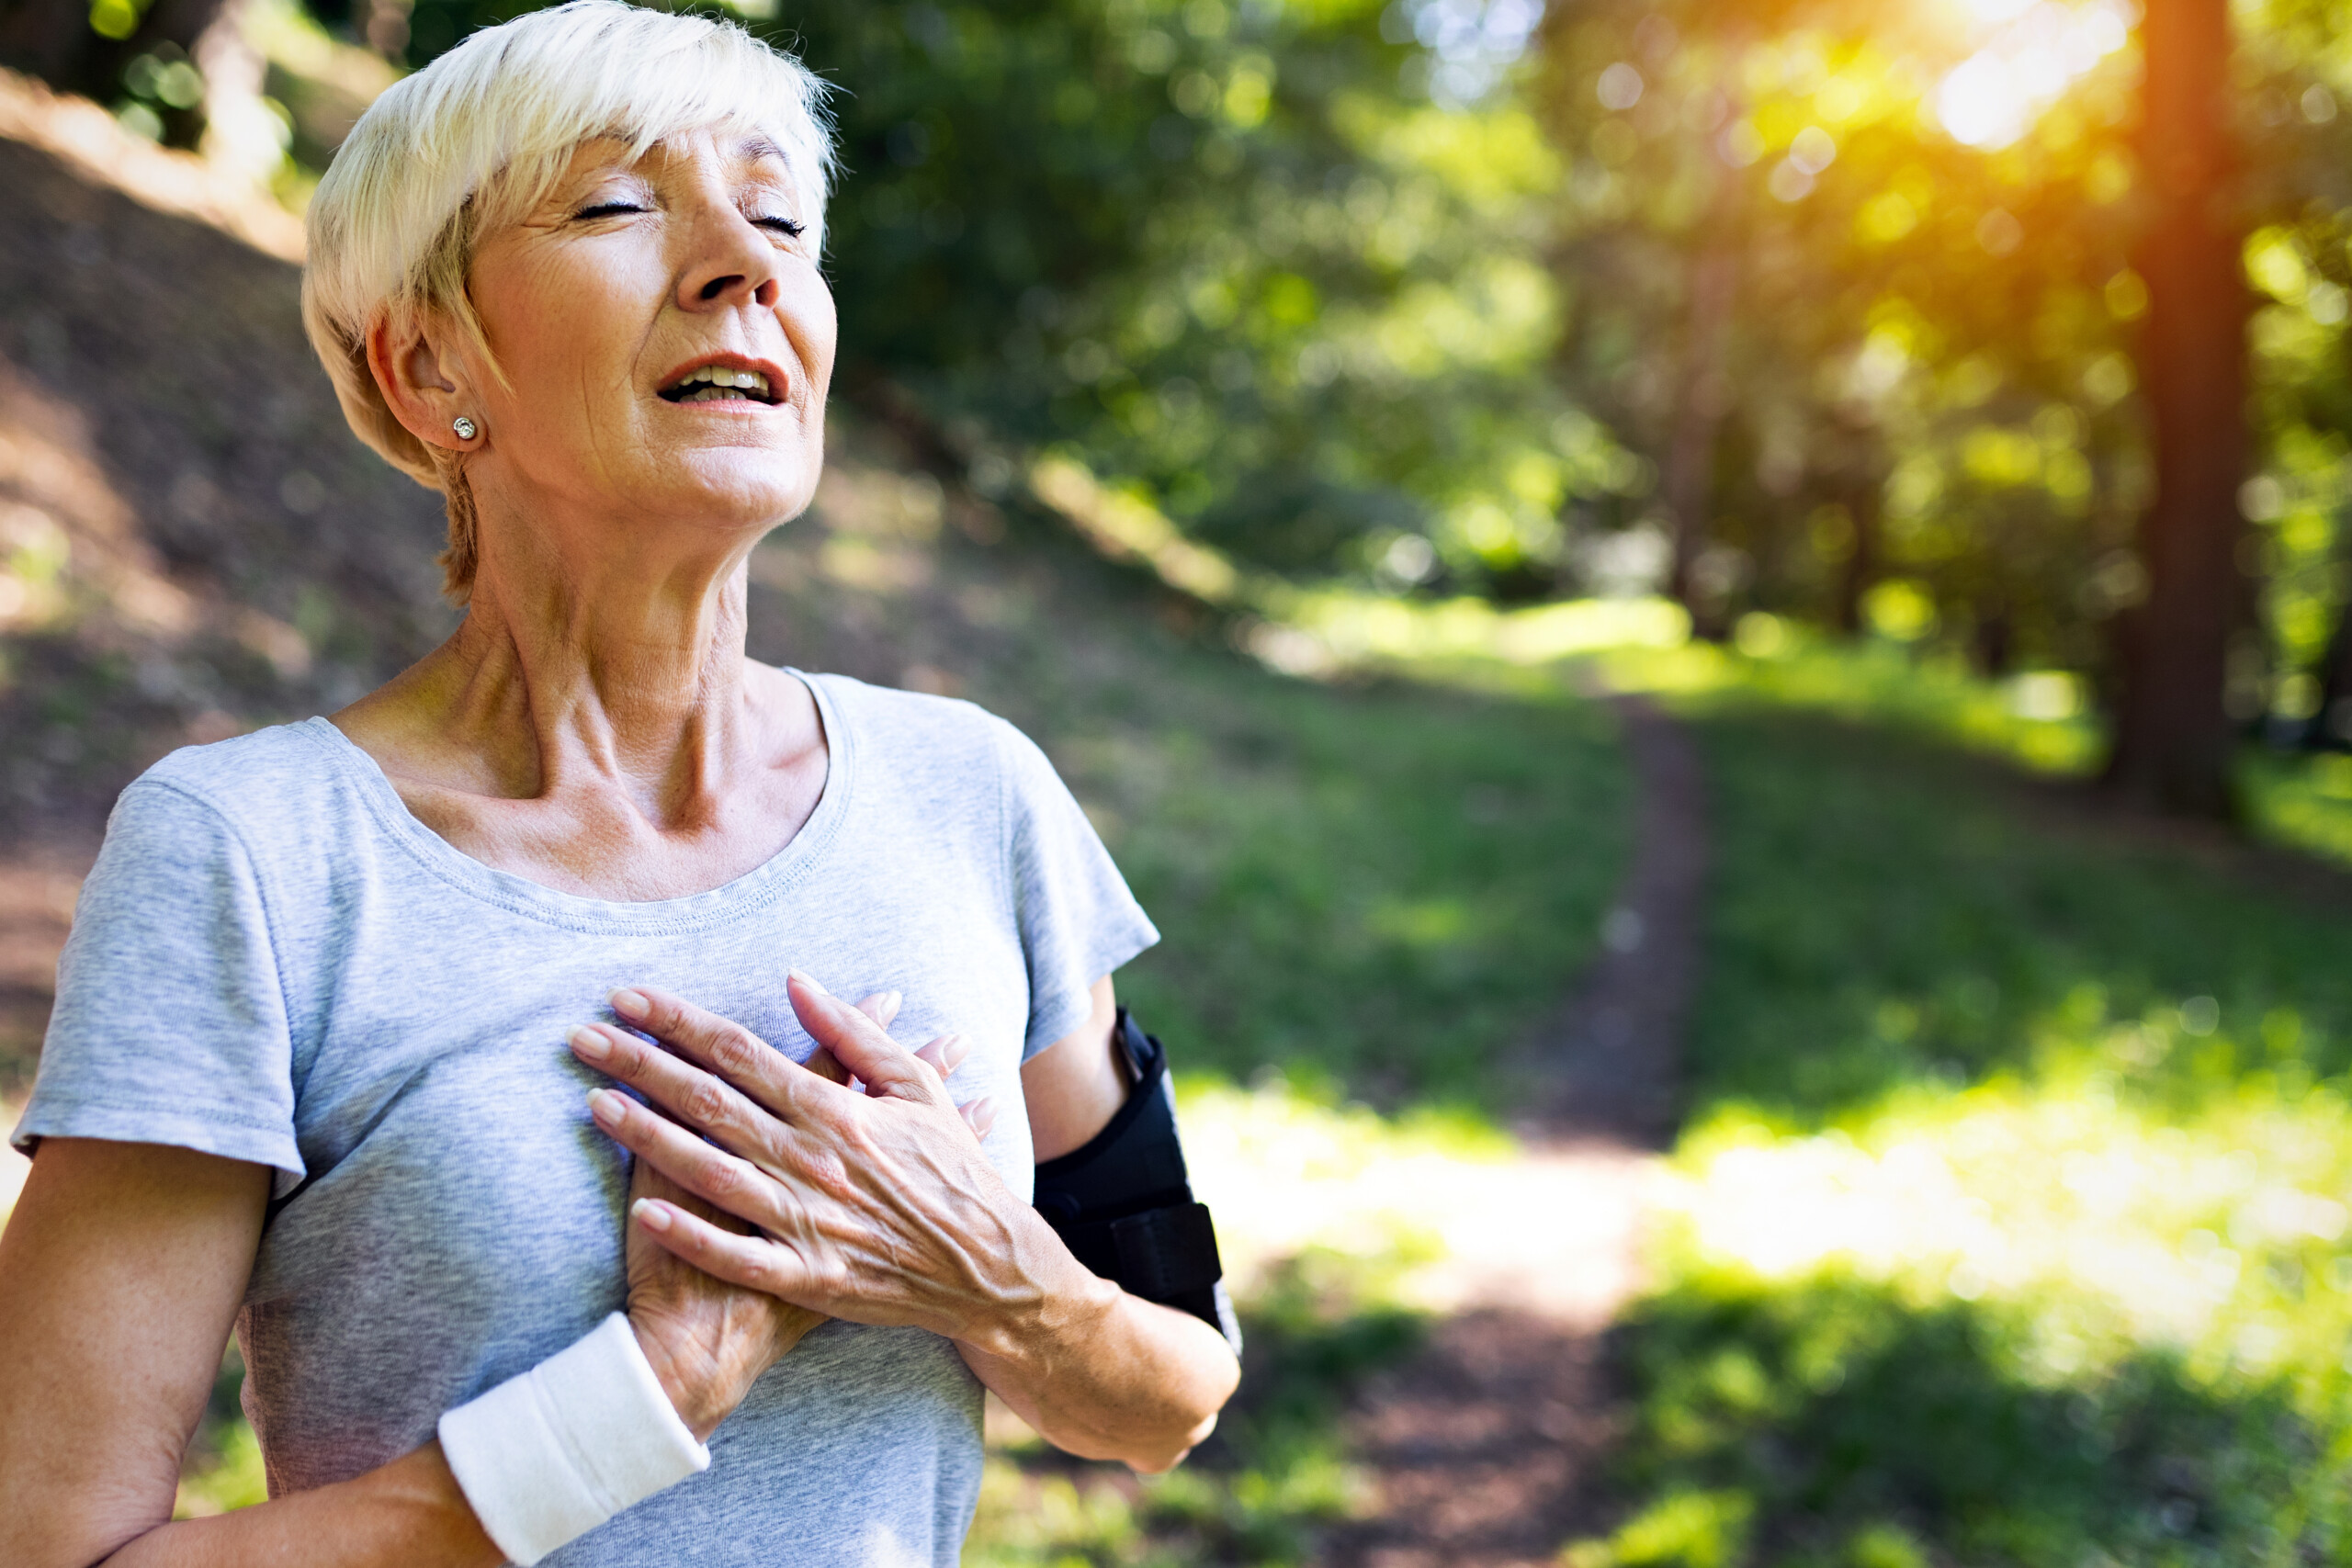 Is The Chest Pain of Prinzmetal Angina Always Severe?